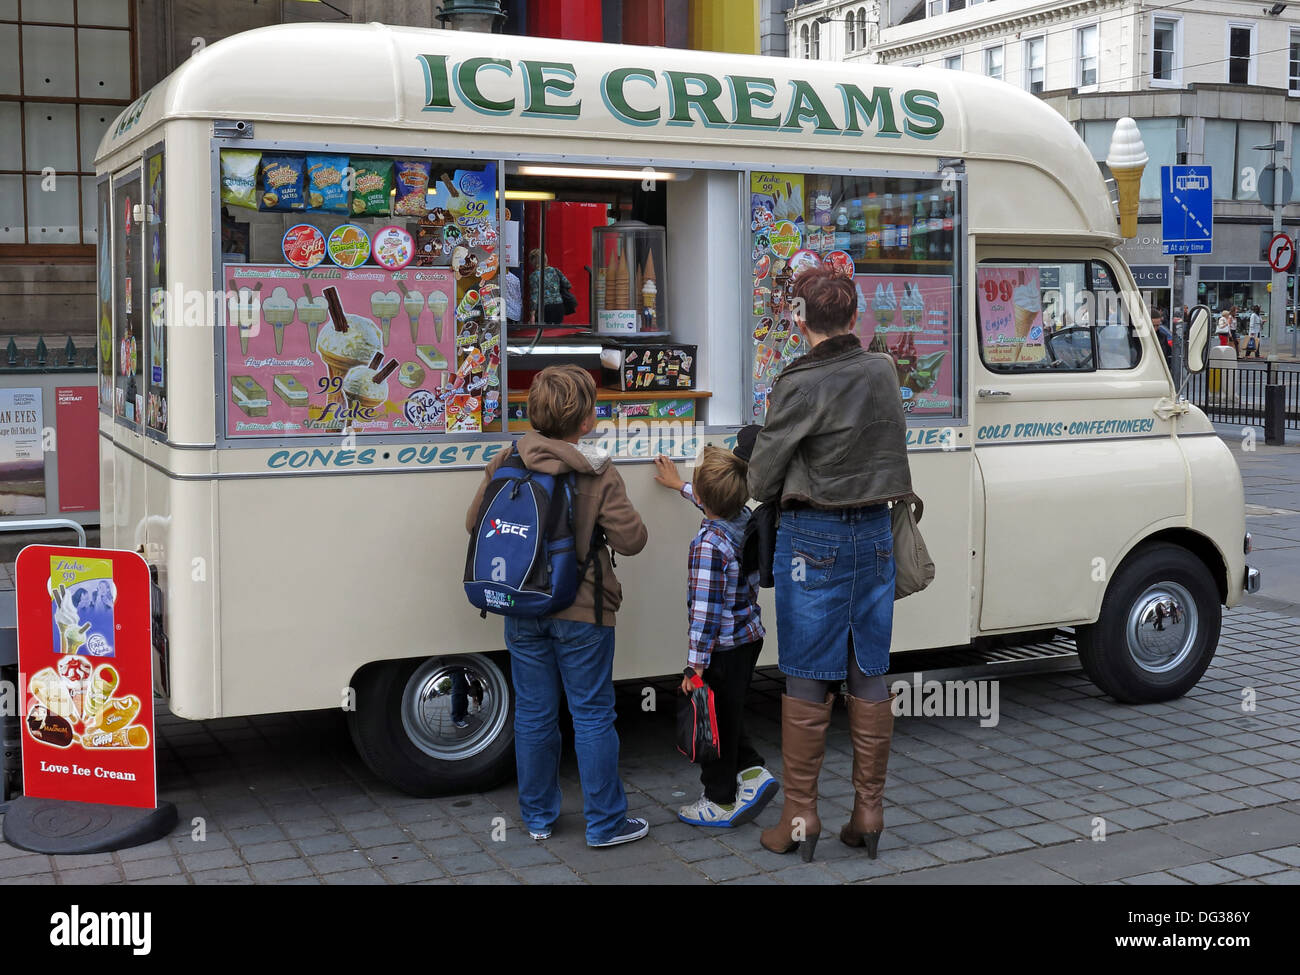 1960s,in,Edinburgh,city,centre,Scotland,UK,2013,mrwhippy,mr,whippy,ice,cream,icecream,cone,cones,wafer,wafers,lollies,lolly,kids,pleasure,soft,serve,softserve,vans,happy,customer,hard,van,selling,scoop,soft,machine,British,summer,heatwave,heat,wave,on,his,patch,pitch,Tasttee,Maid,TastteeMaid,tasty,Gotonysmith,customers,truck,stop,me,and,buy,one,Pop,Goes,The,Weasel,The,Entertainer,Music,Box,Dancer,Home,on,the,Range,Its,a,Small,World,Super,Mario,Bros.,Theme,Camptown,Races,Greensleeves,Whistle,While,You,Work,You,Are,My,Sunshine,Teddy,Bears',Picnic,Match,of,the,Day,Ice,Cream,by,Andre,Nickatina,essentially,just,Turkey,in,the,Straw,with,bass,1970s,used,them,for,laundering,the,proceeds,of,crime,and,a,front,for,drug,dealing.,A,period,of,Glaswegian,criminal,history,Wars,existed,in,the,1980s,rival,gangs,fighting,for,territory,smuggled,cigarettes,fags,fag,The Mister Softee Jingle,Turkey in the Straw,Do Your Ears Hang Low?,,,1,,,,,,,or,; or, in Australia, New Zealand, the United Kingdom,,,,in Crewe and Nantwich,,in Vale Royal,,in Sheffield, and,in,other,places.,In,some,places,in,the,US,,ice,cream,trucks,play,the,song